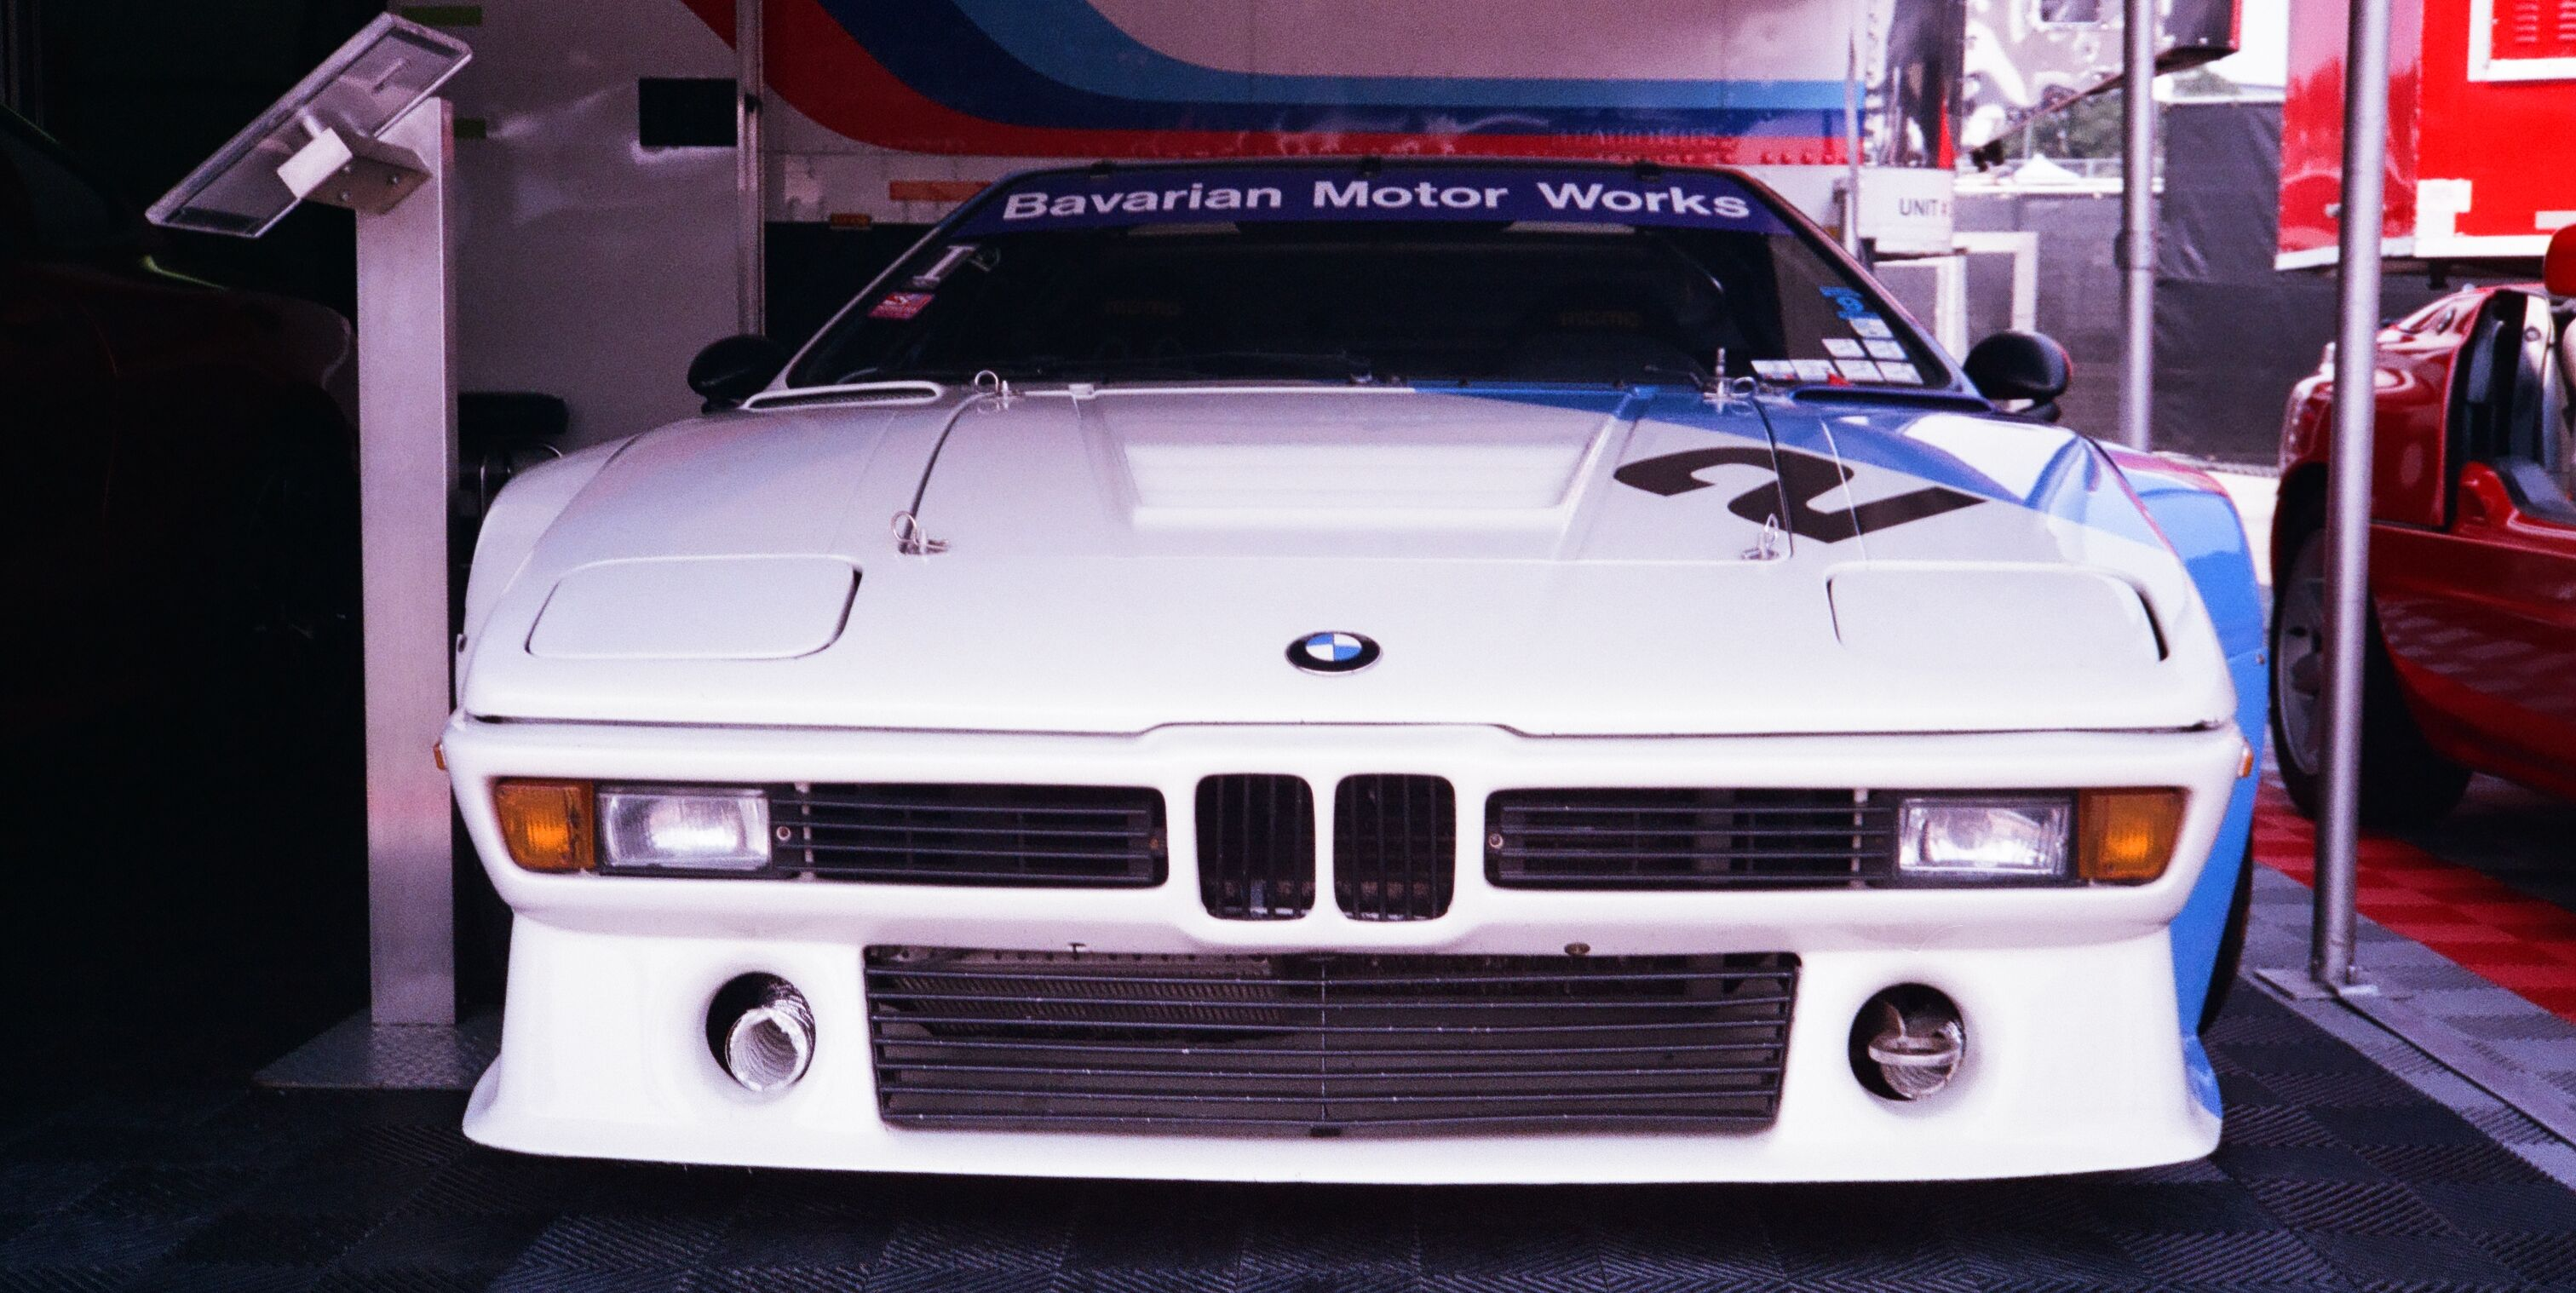 The 1970s BMW M1 Procar Series Makes a Comeback This July